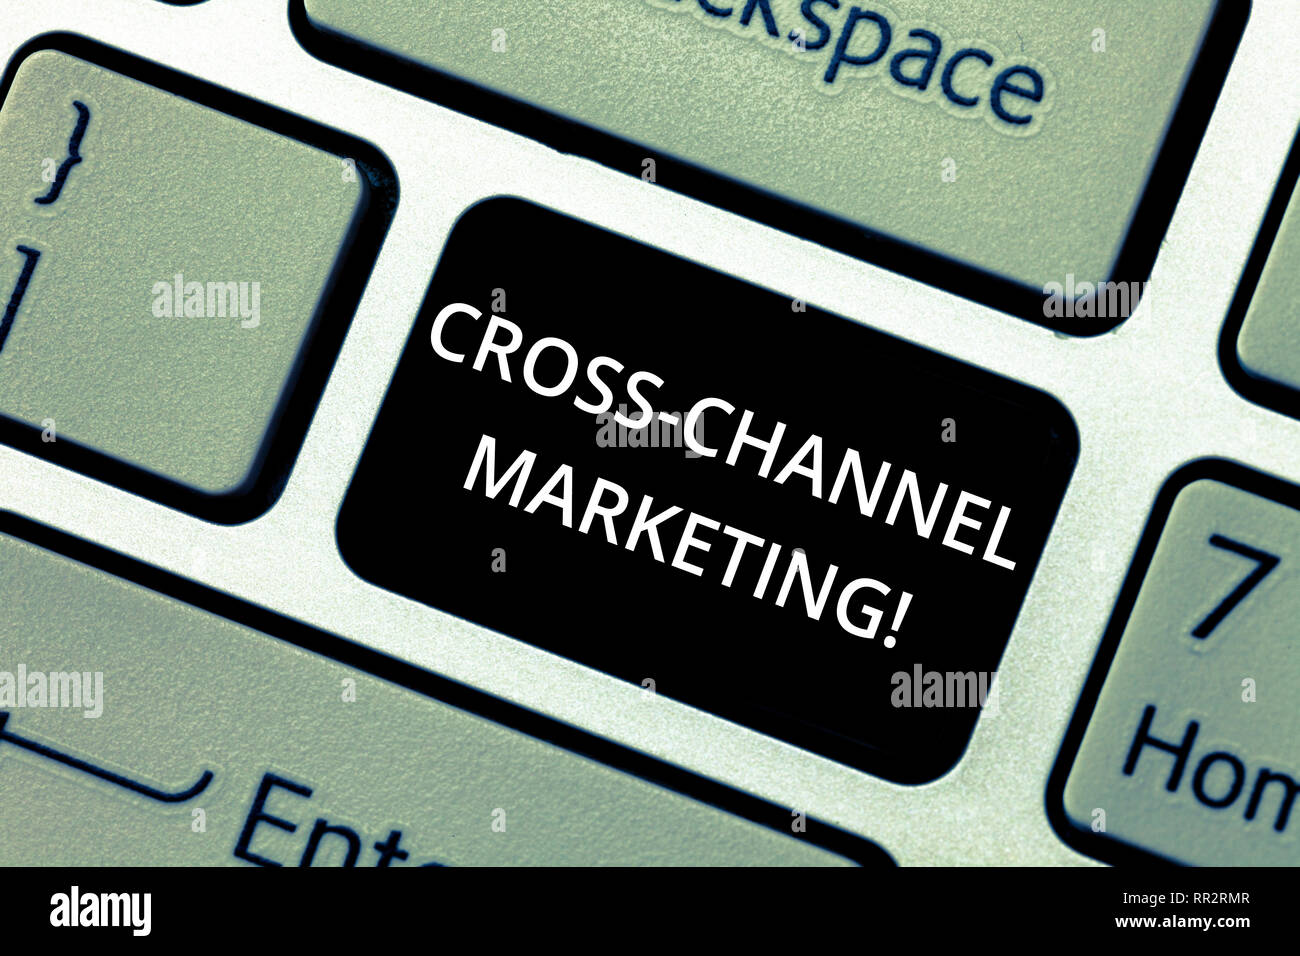 Word writing text Cross Channel Marketing. Business concept for Engaging with customer across every digital channel Keyboard key Intention to create c - Stock Image